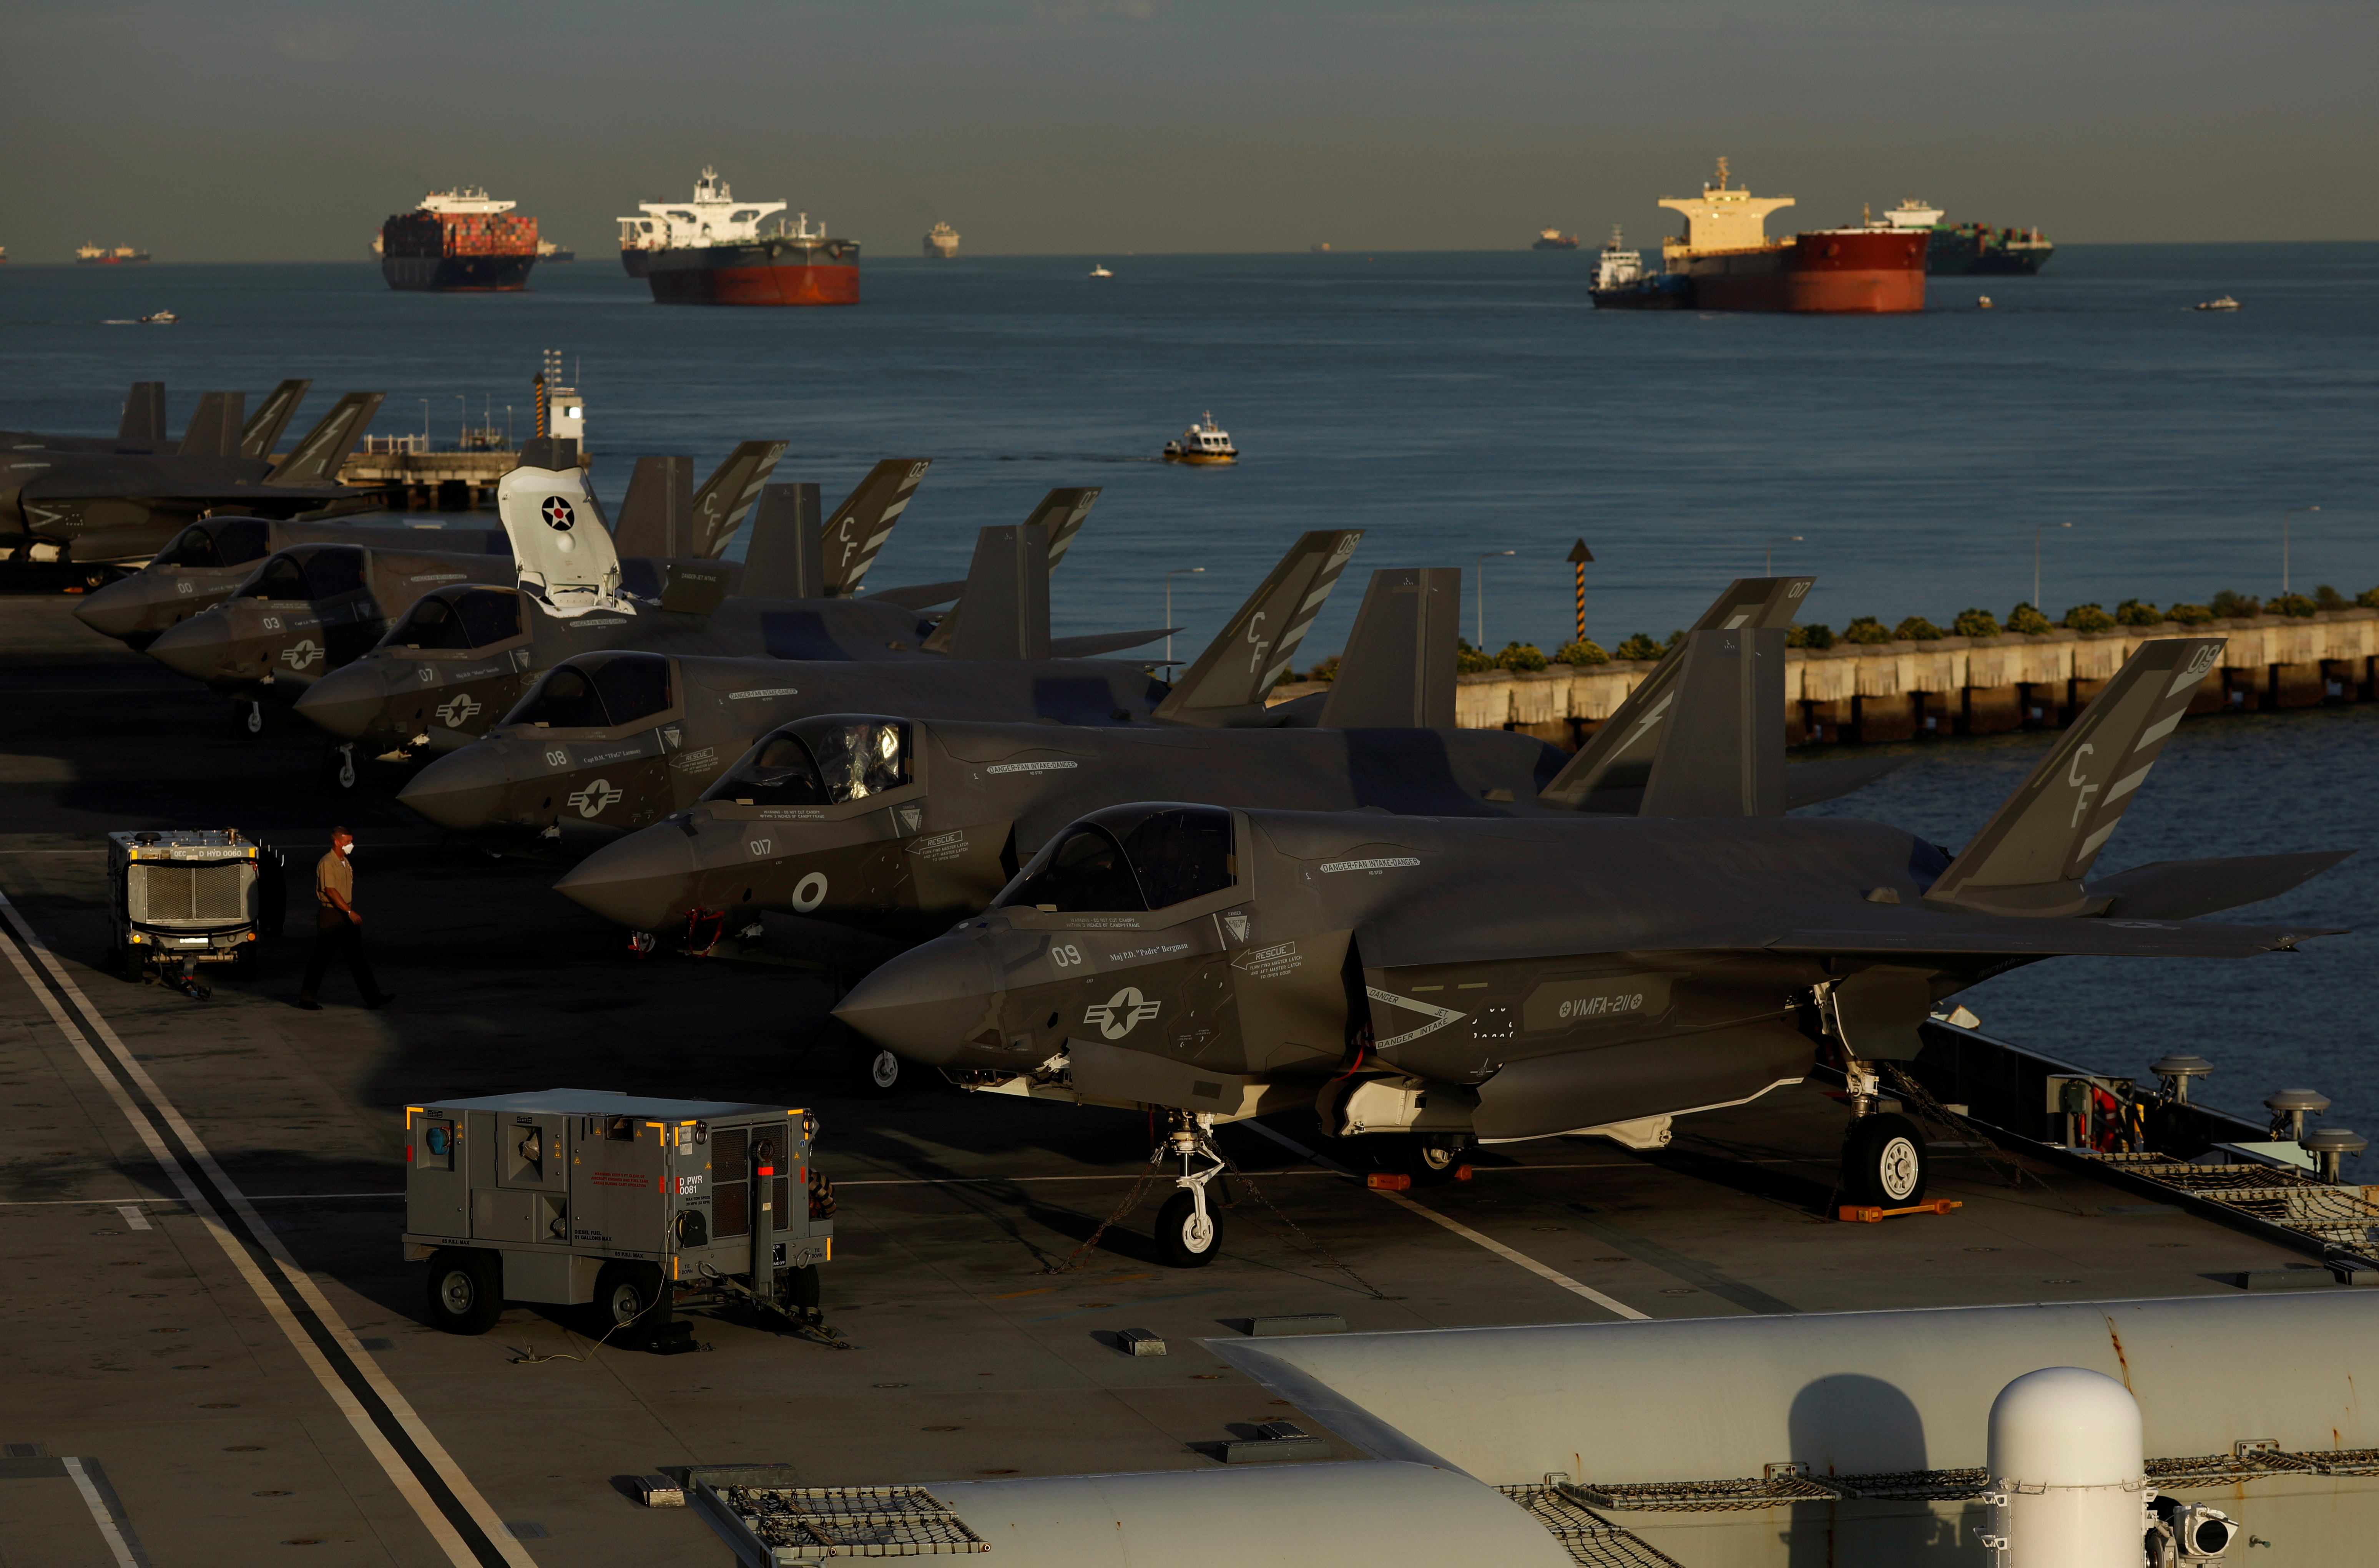 A row of Lockheed Martin F-35B Lightning II aircraft is seen onboard Britain's HMS Queen Elizabeth aircraft carrier at Changi Naval Base in Singapore October 11, 2021. REUTERS/Edgar Su